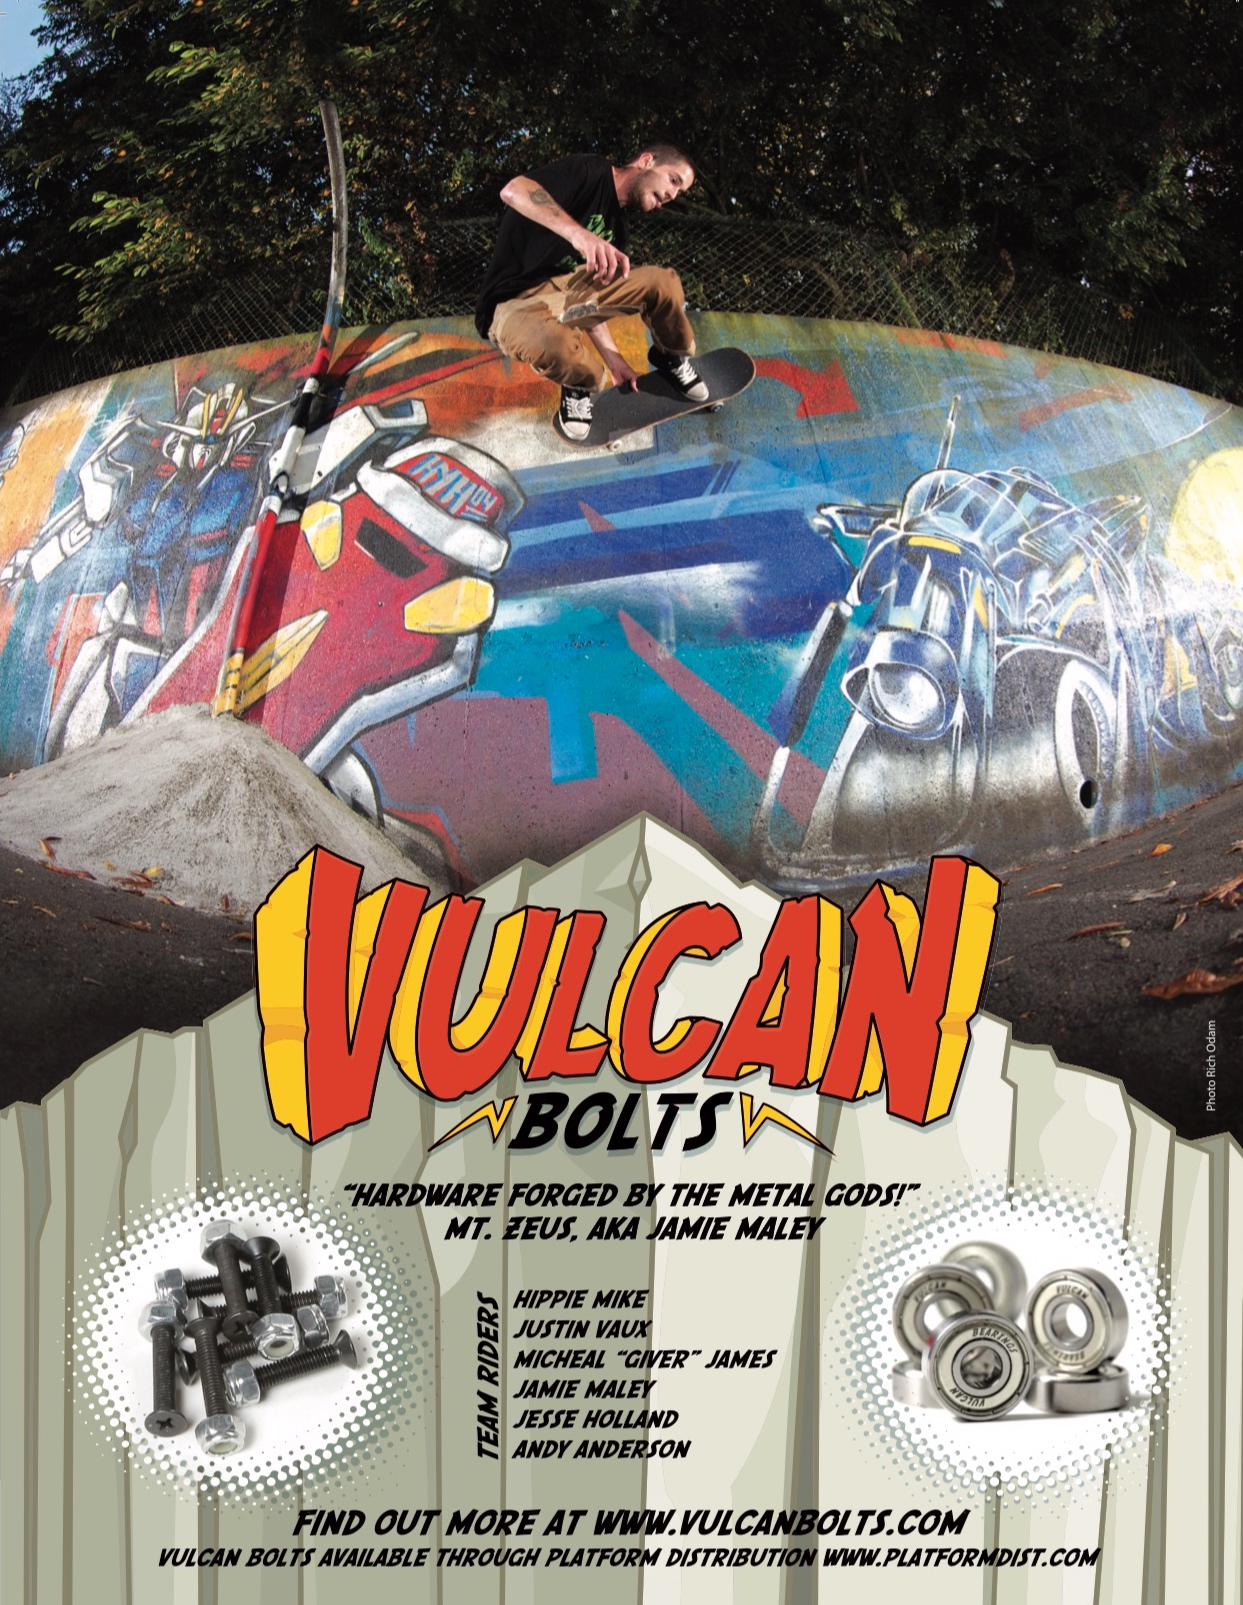 Our first Vulcan Bolts ad in Concrete Magazine